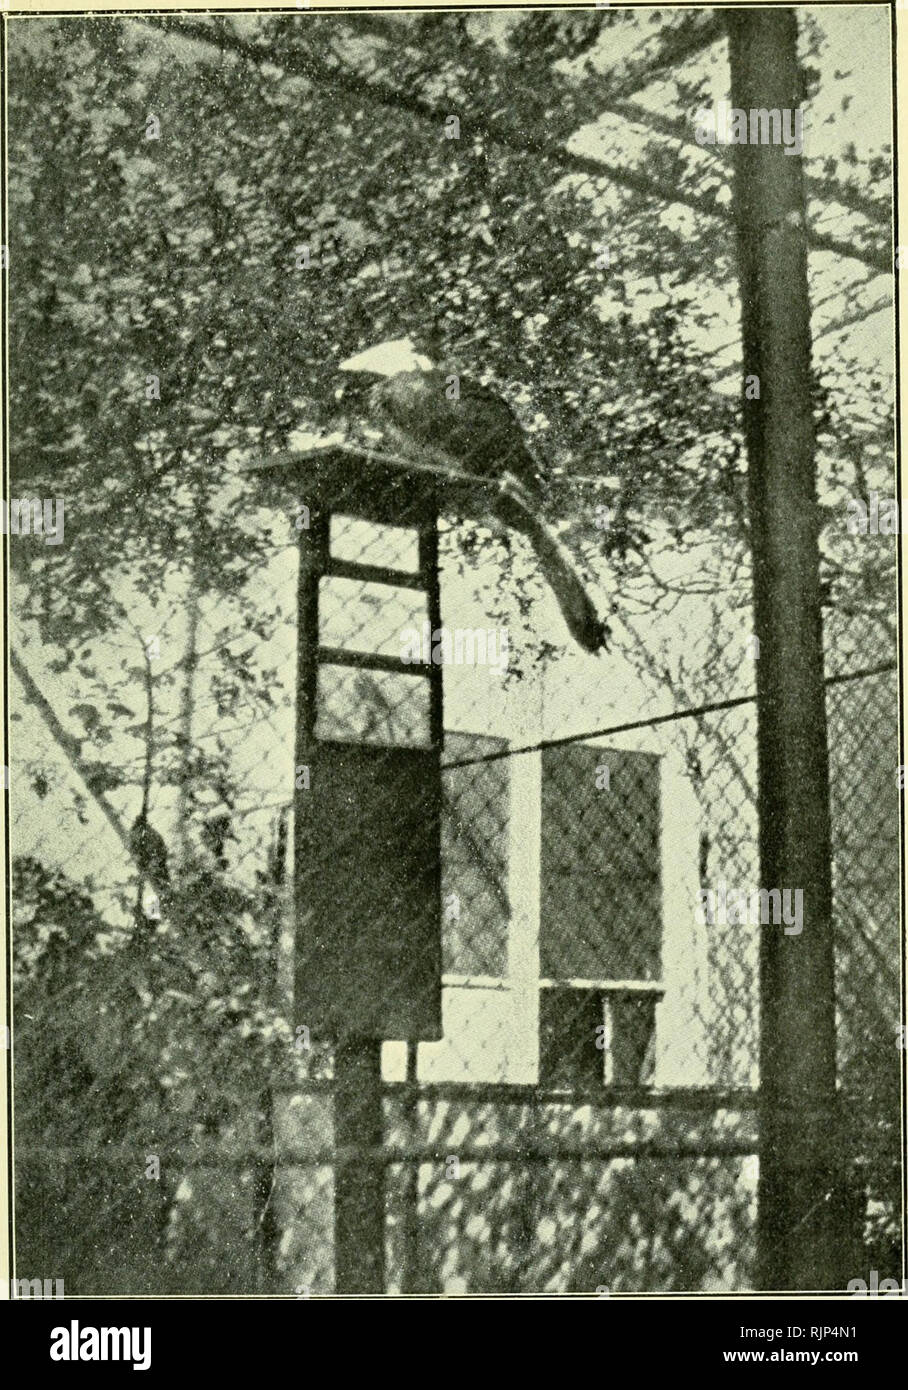 ". The Avicultural magazine. Birds; Cage birds. The AvicuLTURAL Magazine.. Roof nettinsl. Branches of hawthorn. Head and beak. Body. Tip of wing. Slanting tail. End of tail. Exhibition board on picture pillar, with three oblong picture- labels. Shelter-house with door and windows. Boards to prevent fighting through wires. Photo, by Grah.im Renshaw, M.D. Courtesy of Dr. Kerbert. AVICULTURE AND EDUCATION: Exhibition Methods at the Amsterdam Zoological Gardens. The bird shown is a Temmmck Pied Hornbill i A""fh raruci'ro>' r,,""re.vMx). Conspicuous with its large white picU-axe beak, it is seen pe - Stock Image"